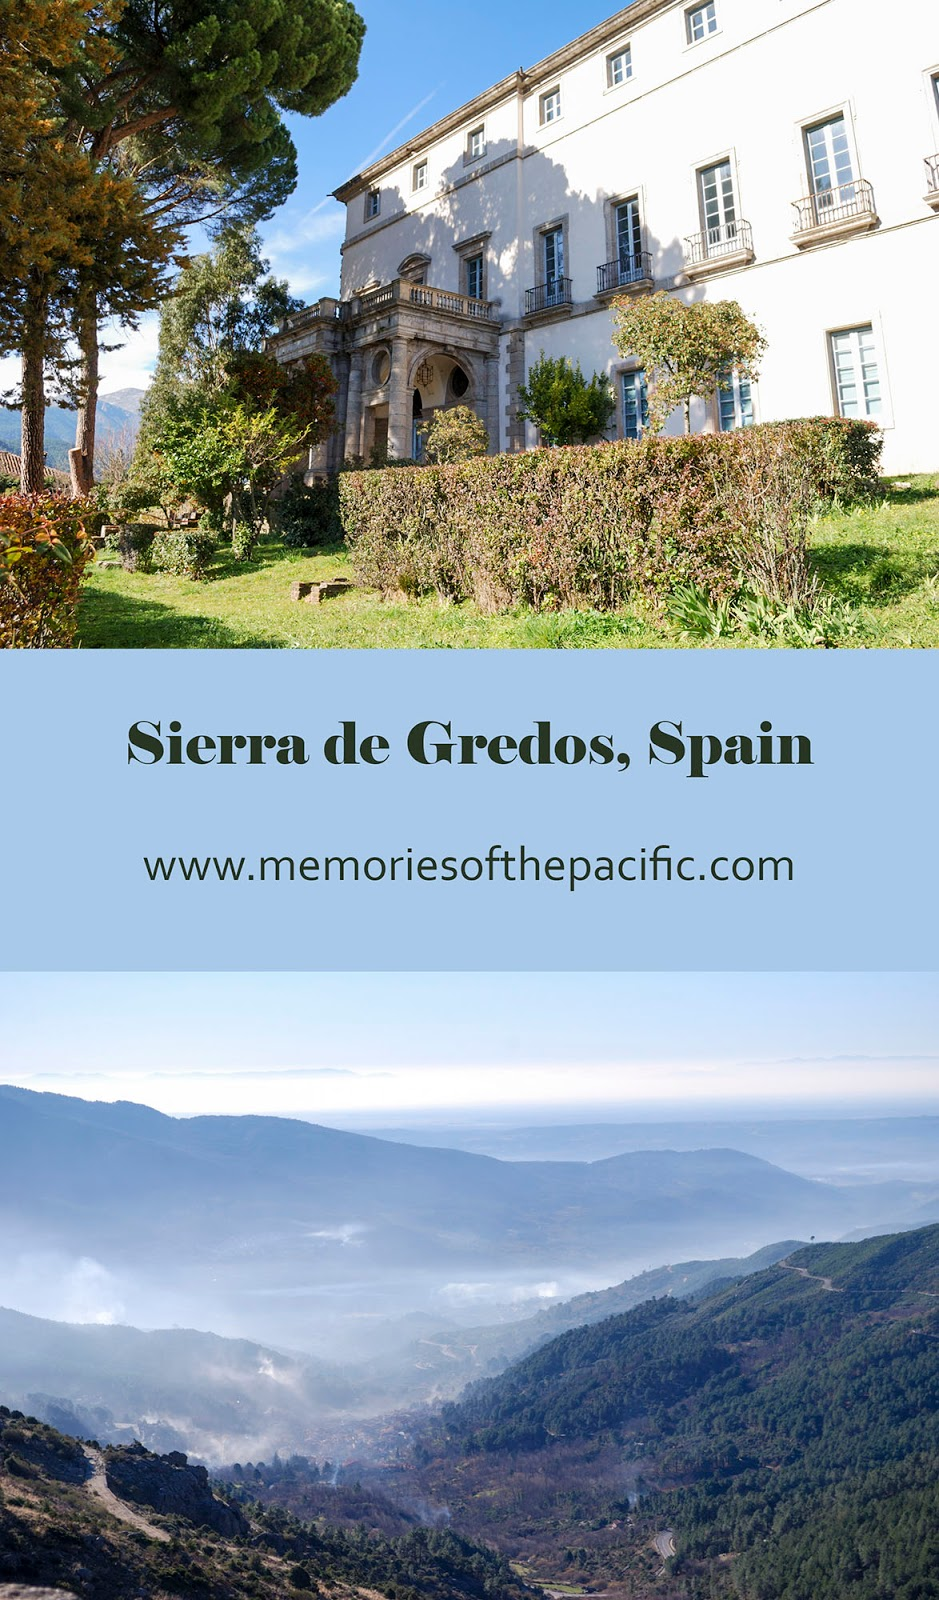 sierra gredos avila mountain range spain hike nature historic town